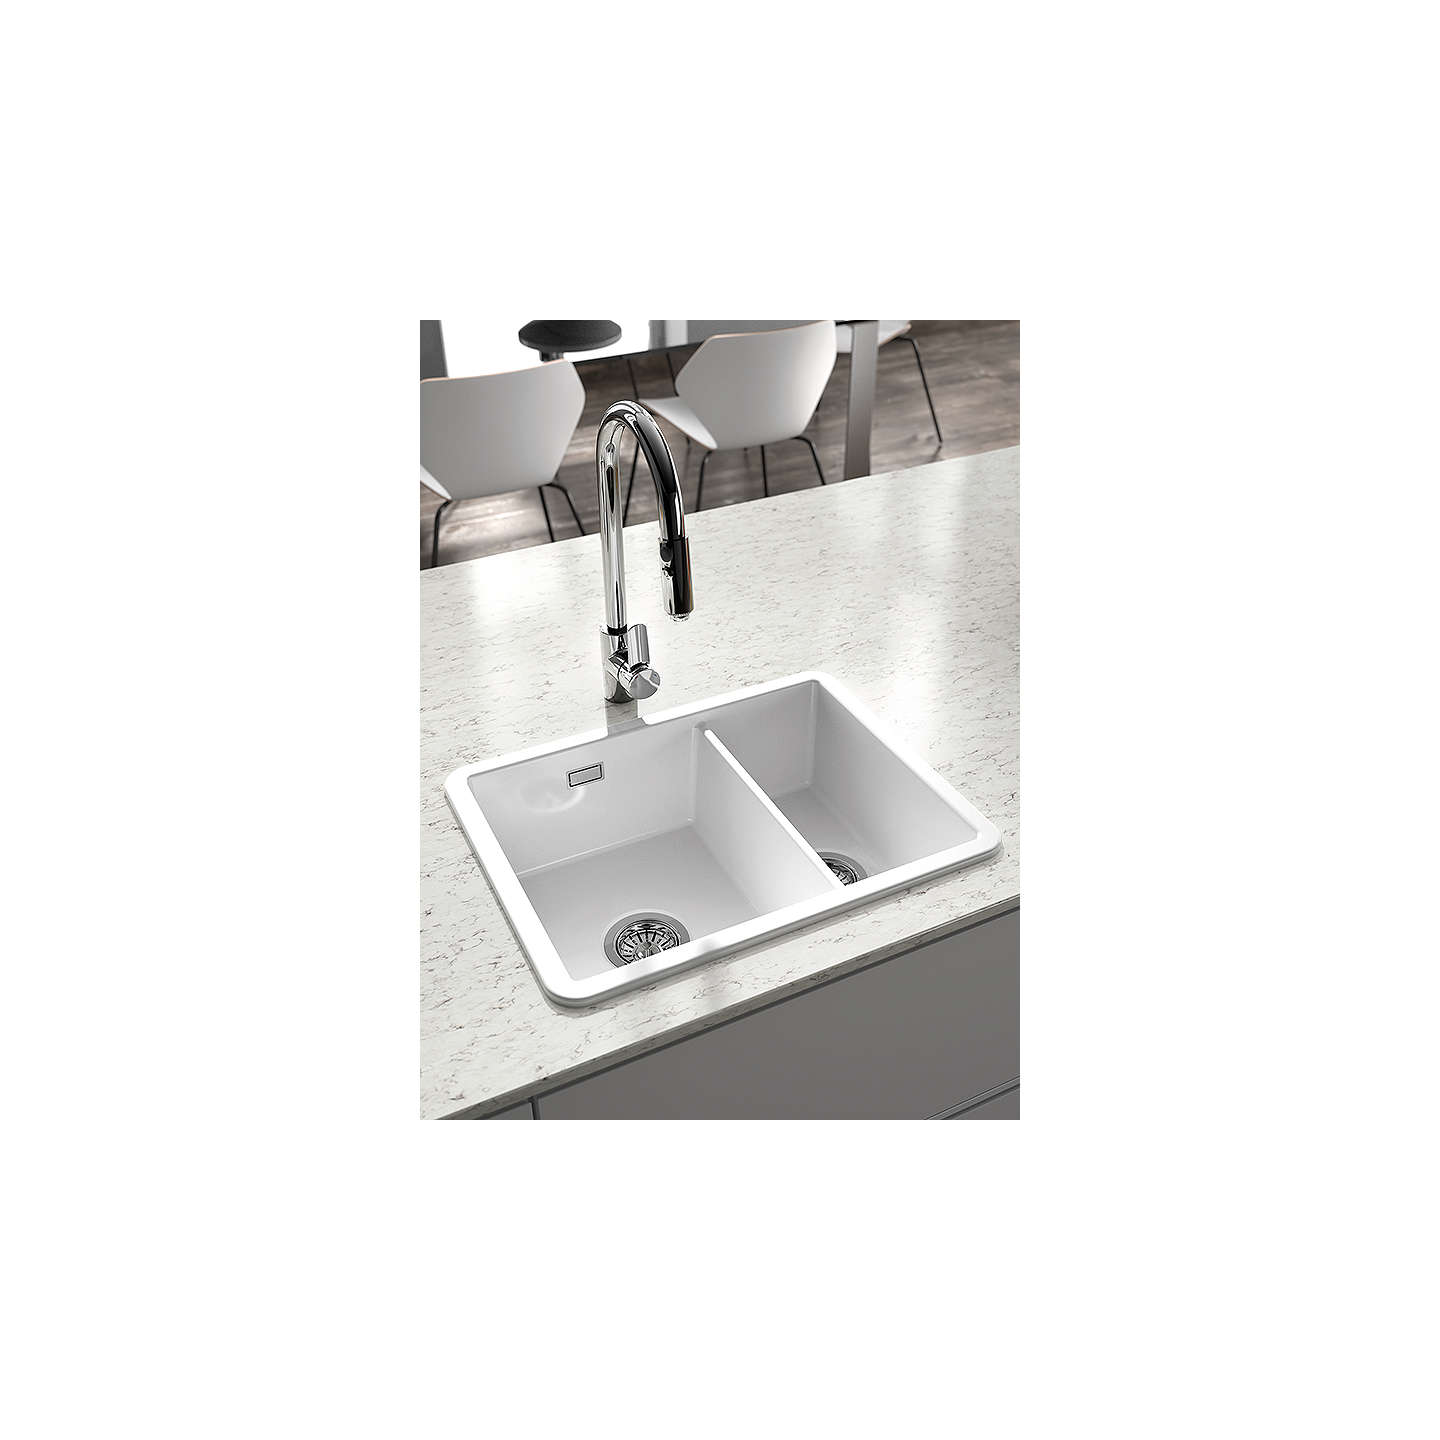 Clearwater Metro 1.5 Bowl Ceramic Kitchen Sink, White at John Lewis